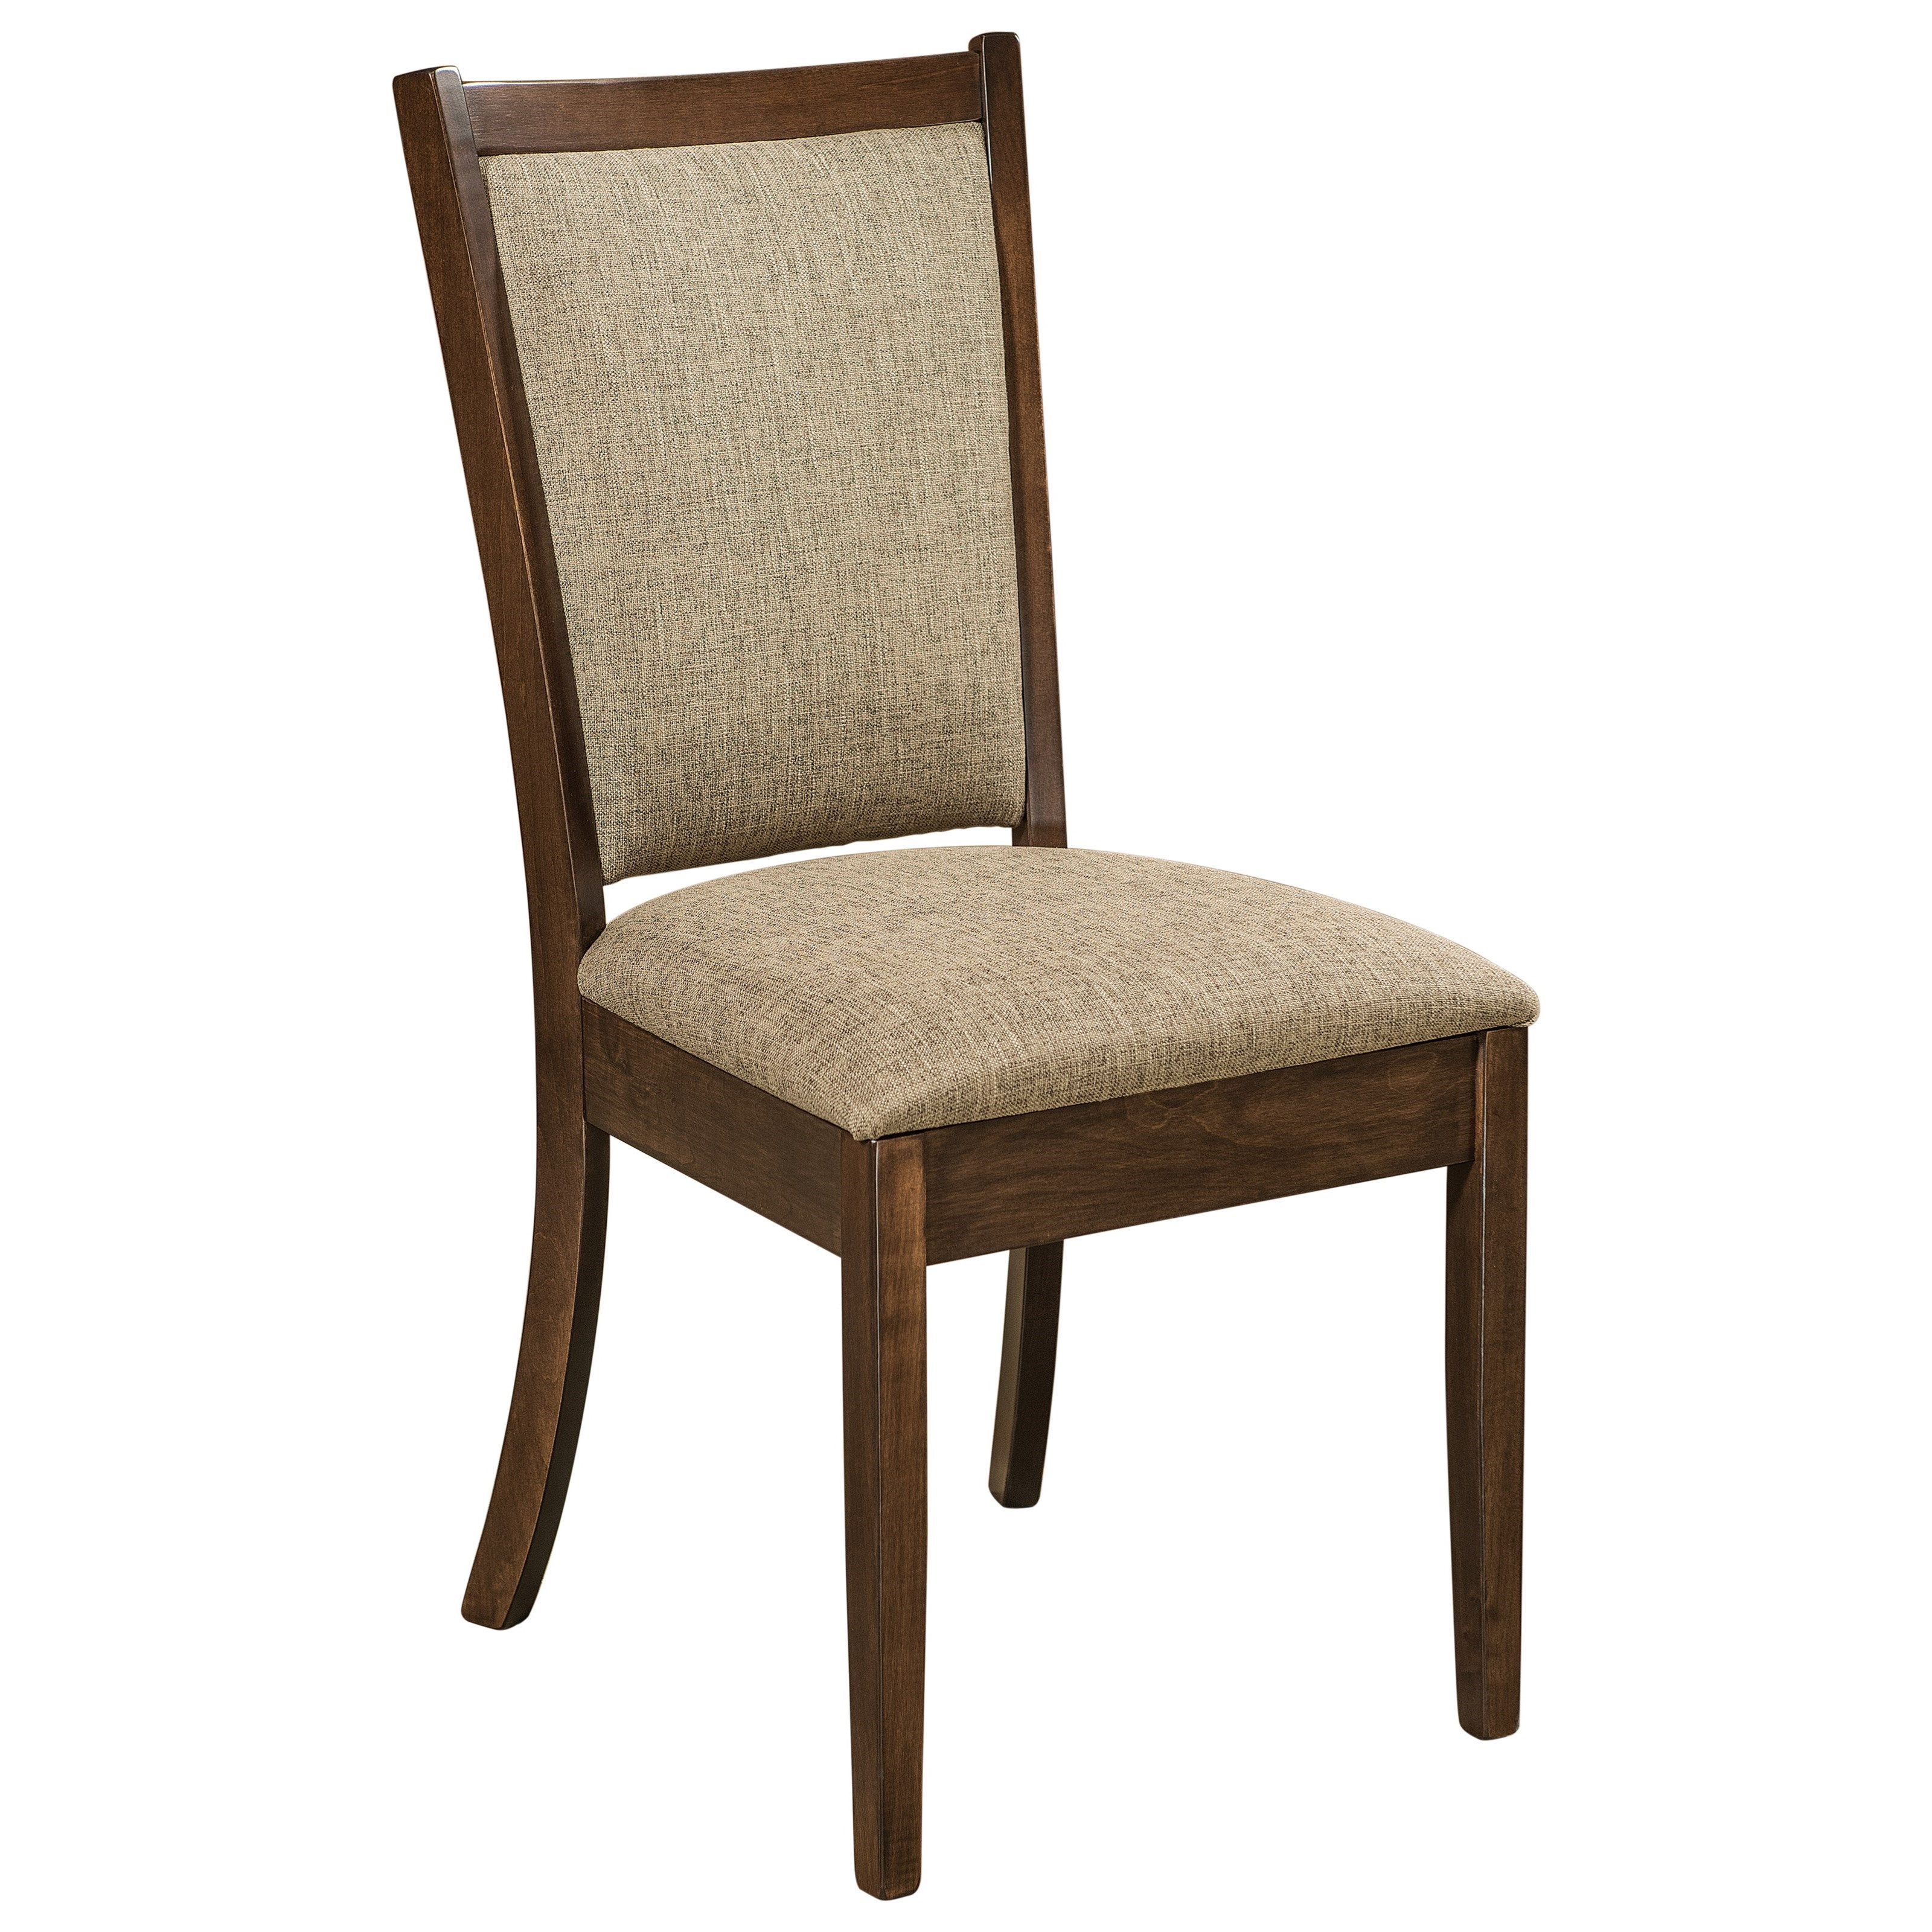 Kalispel Customizable Solid Wood Dining Side Chair by F&N Woodworking at Saugerties Furniture Mart